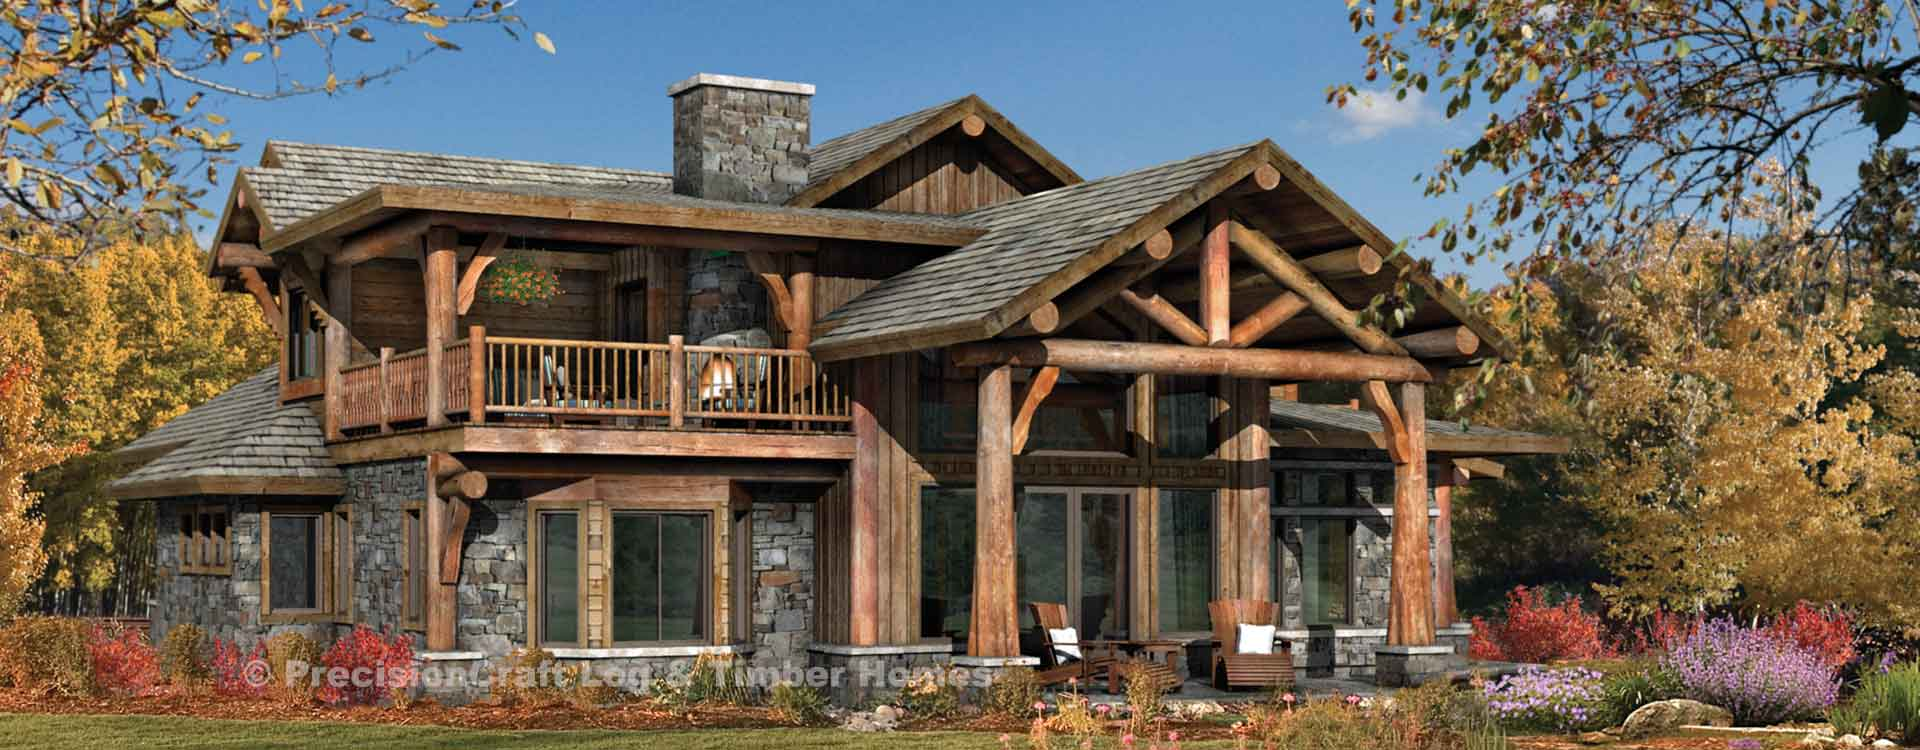 Huntington log home Rendering